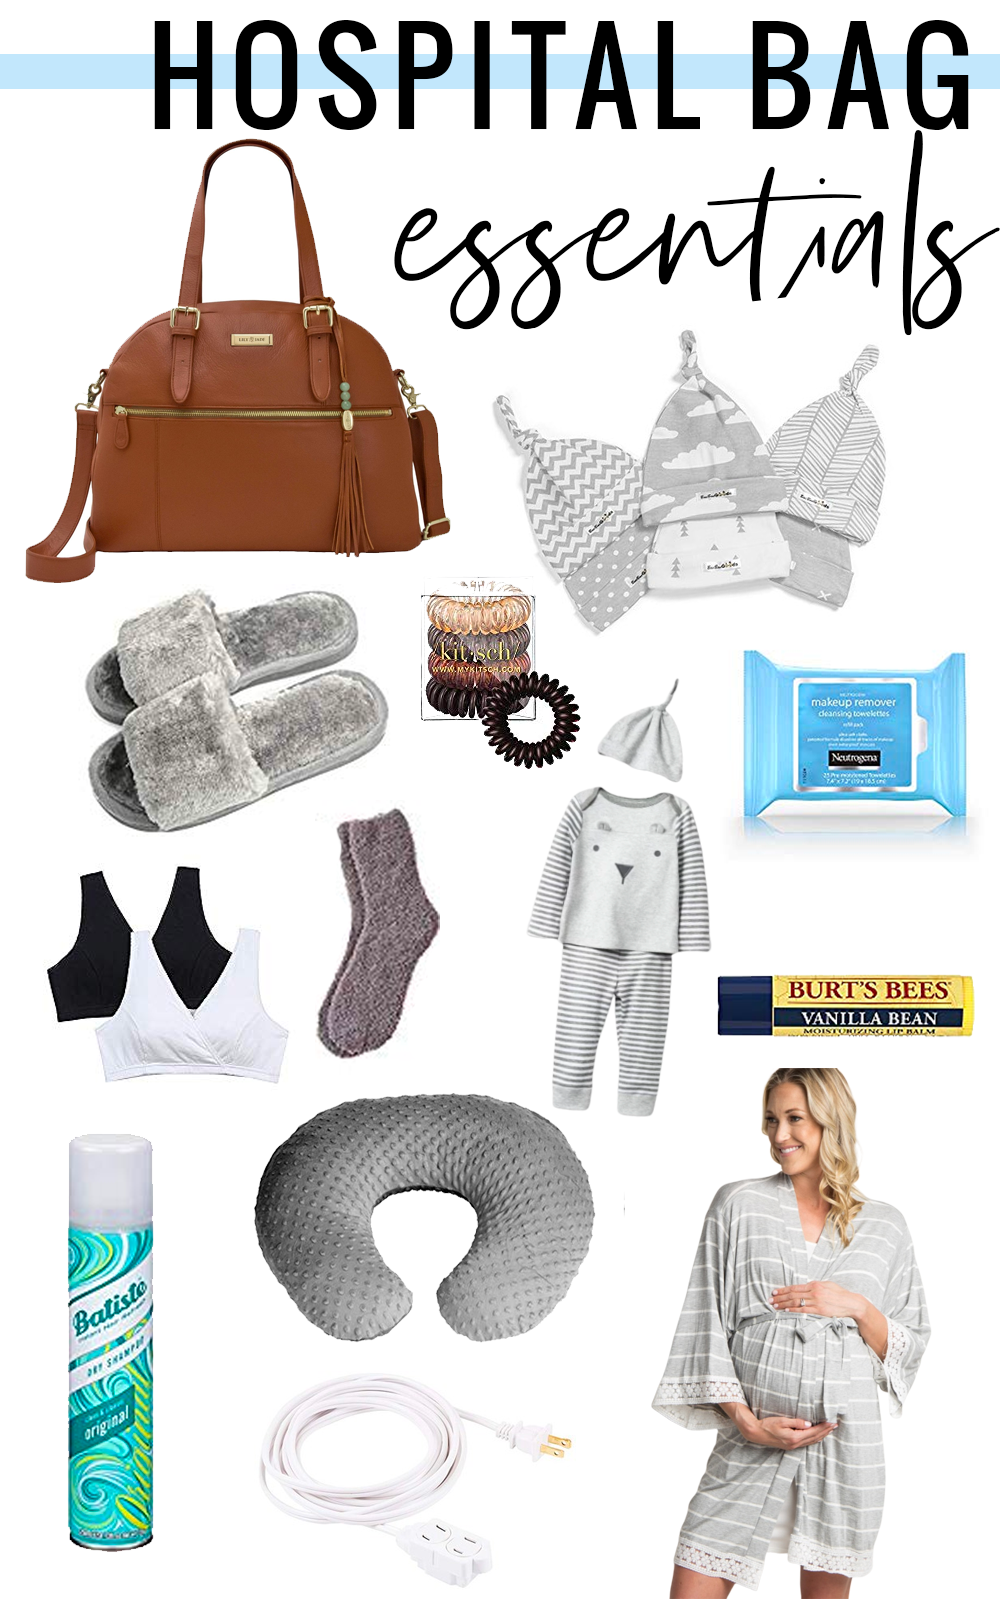 hospital bag essentials for labor and delivery - what you need to pack in your hospital bag #newborn… | Hospital bag essentials, Hospital bag, Baby girl diaper bags